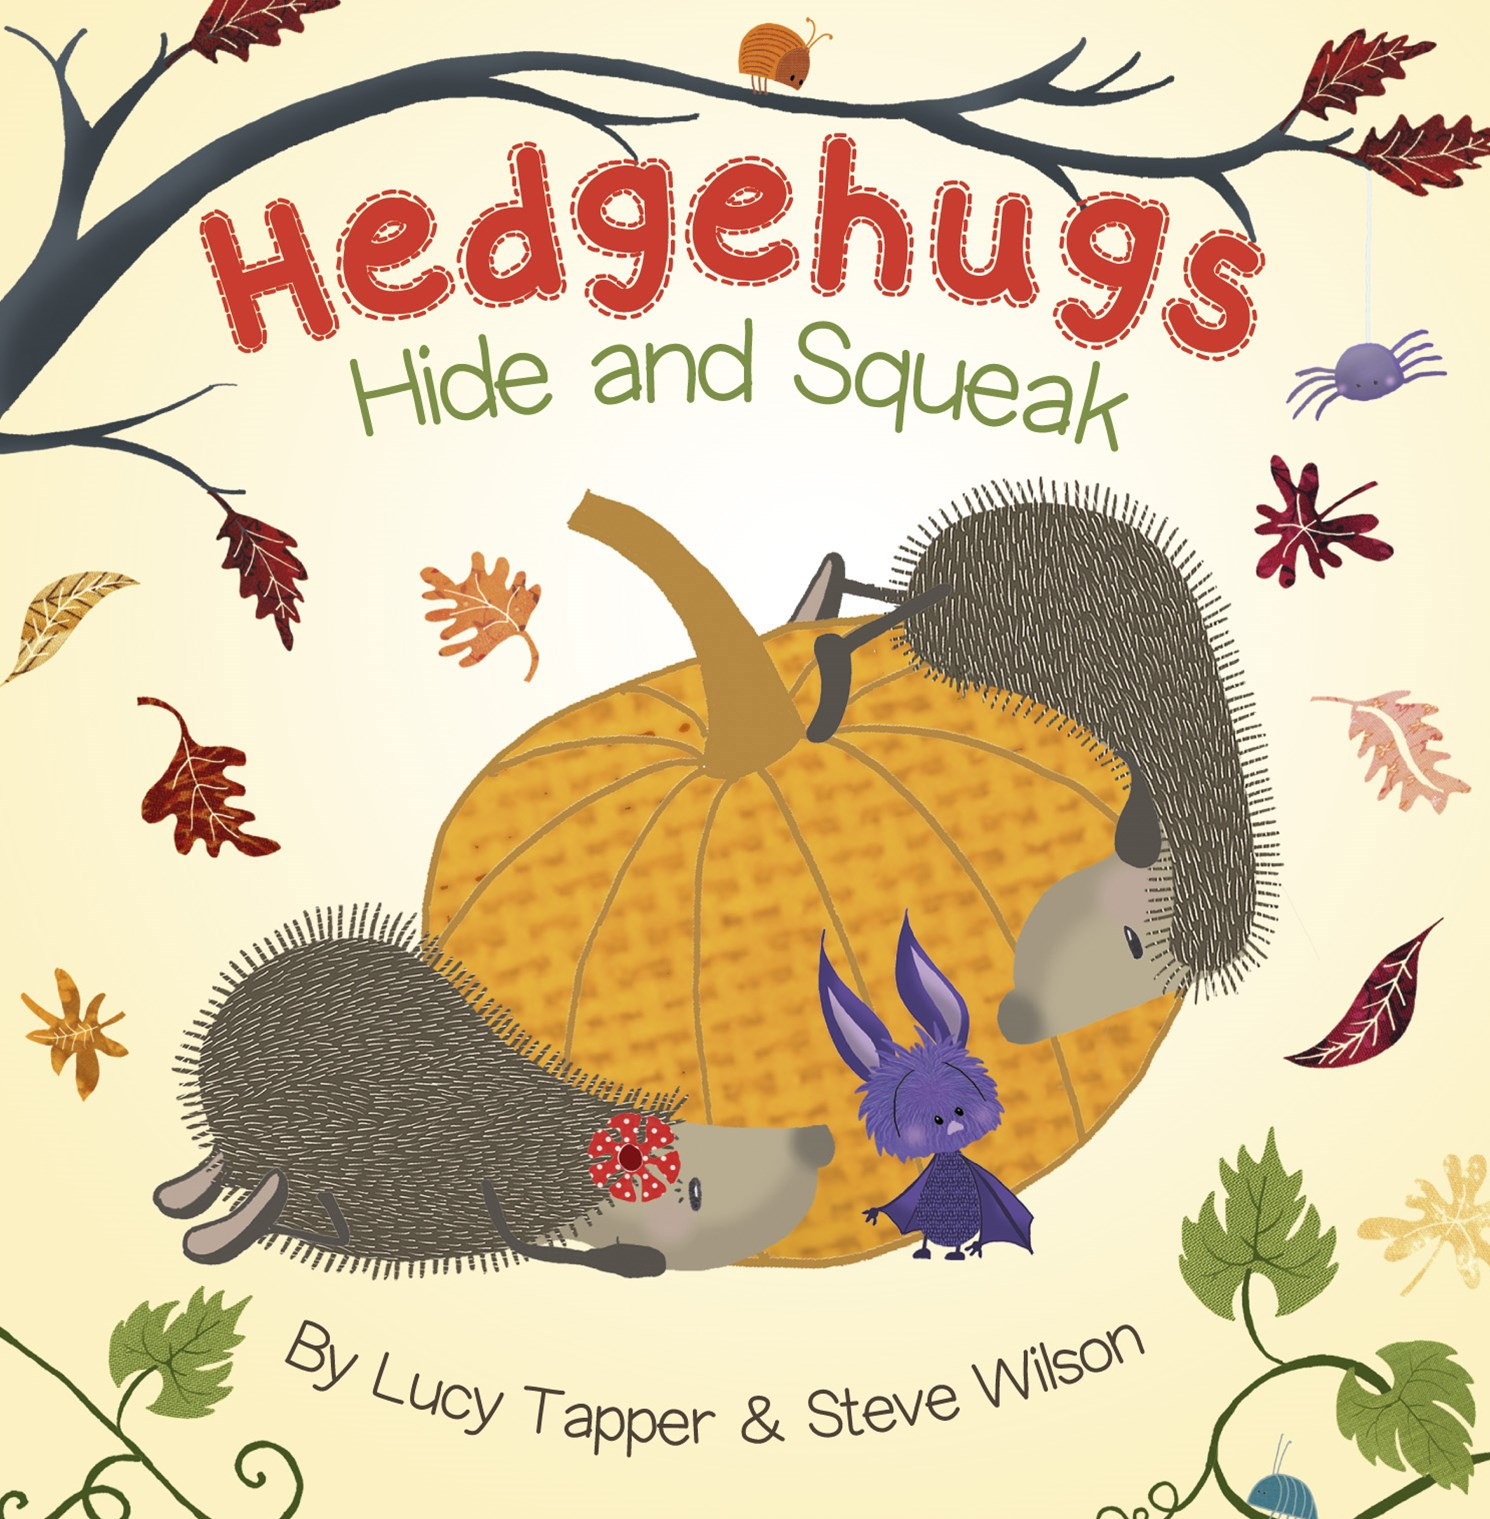 Hedgehugs Hide and Squeak